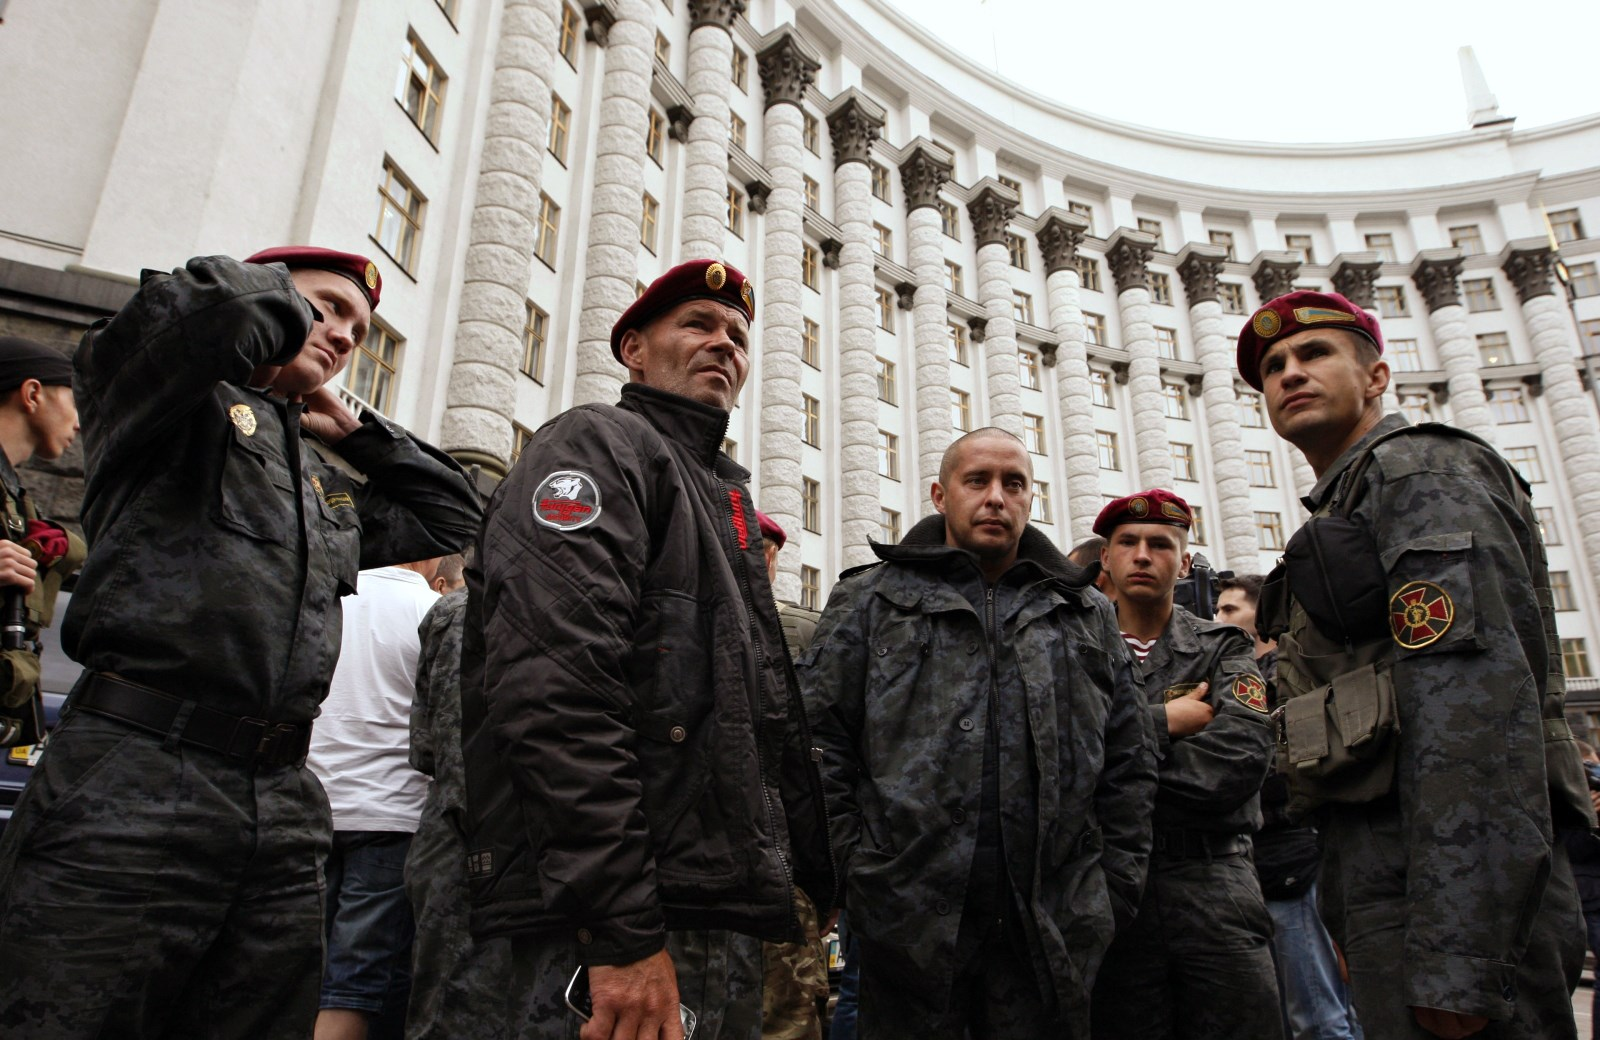 00 junta irregular 'Naional Guard' thugs. 26.02.15